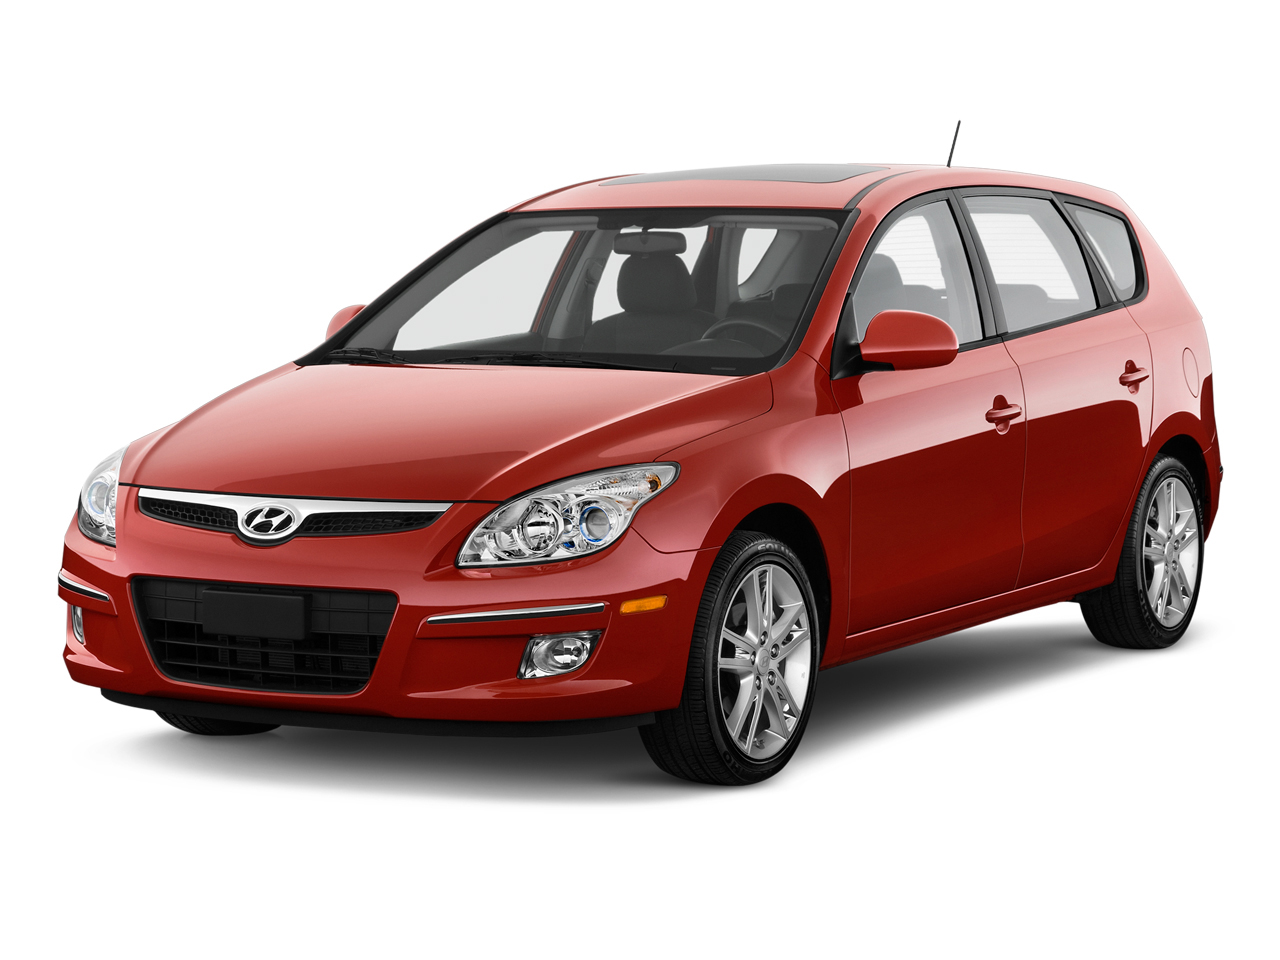 Image Result For Hyundai Elantra Gt Review Research New Used Hyundai